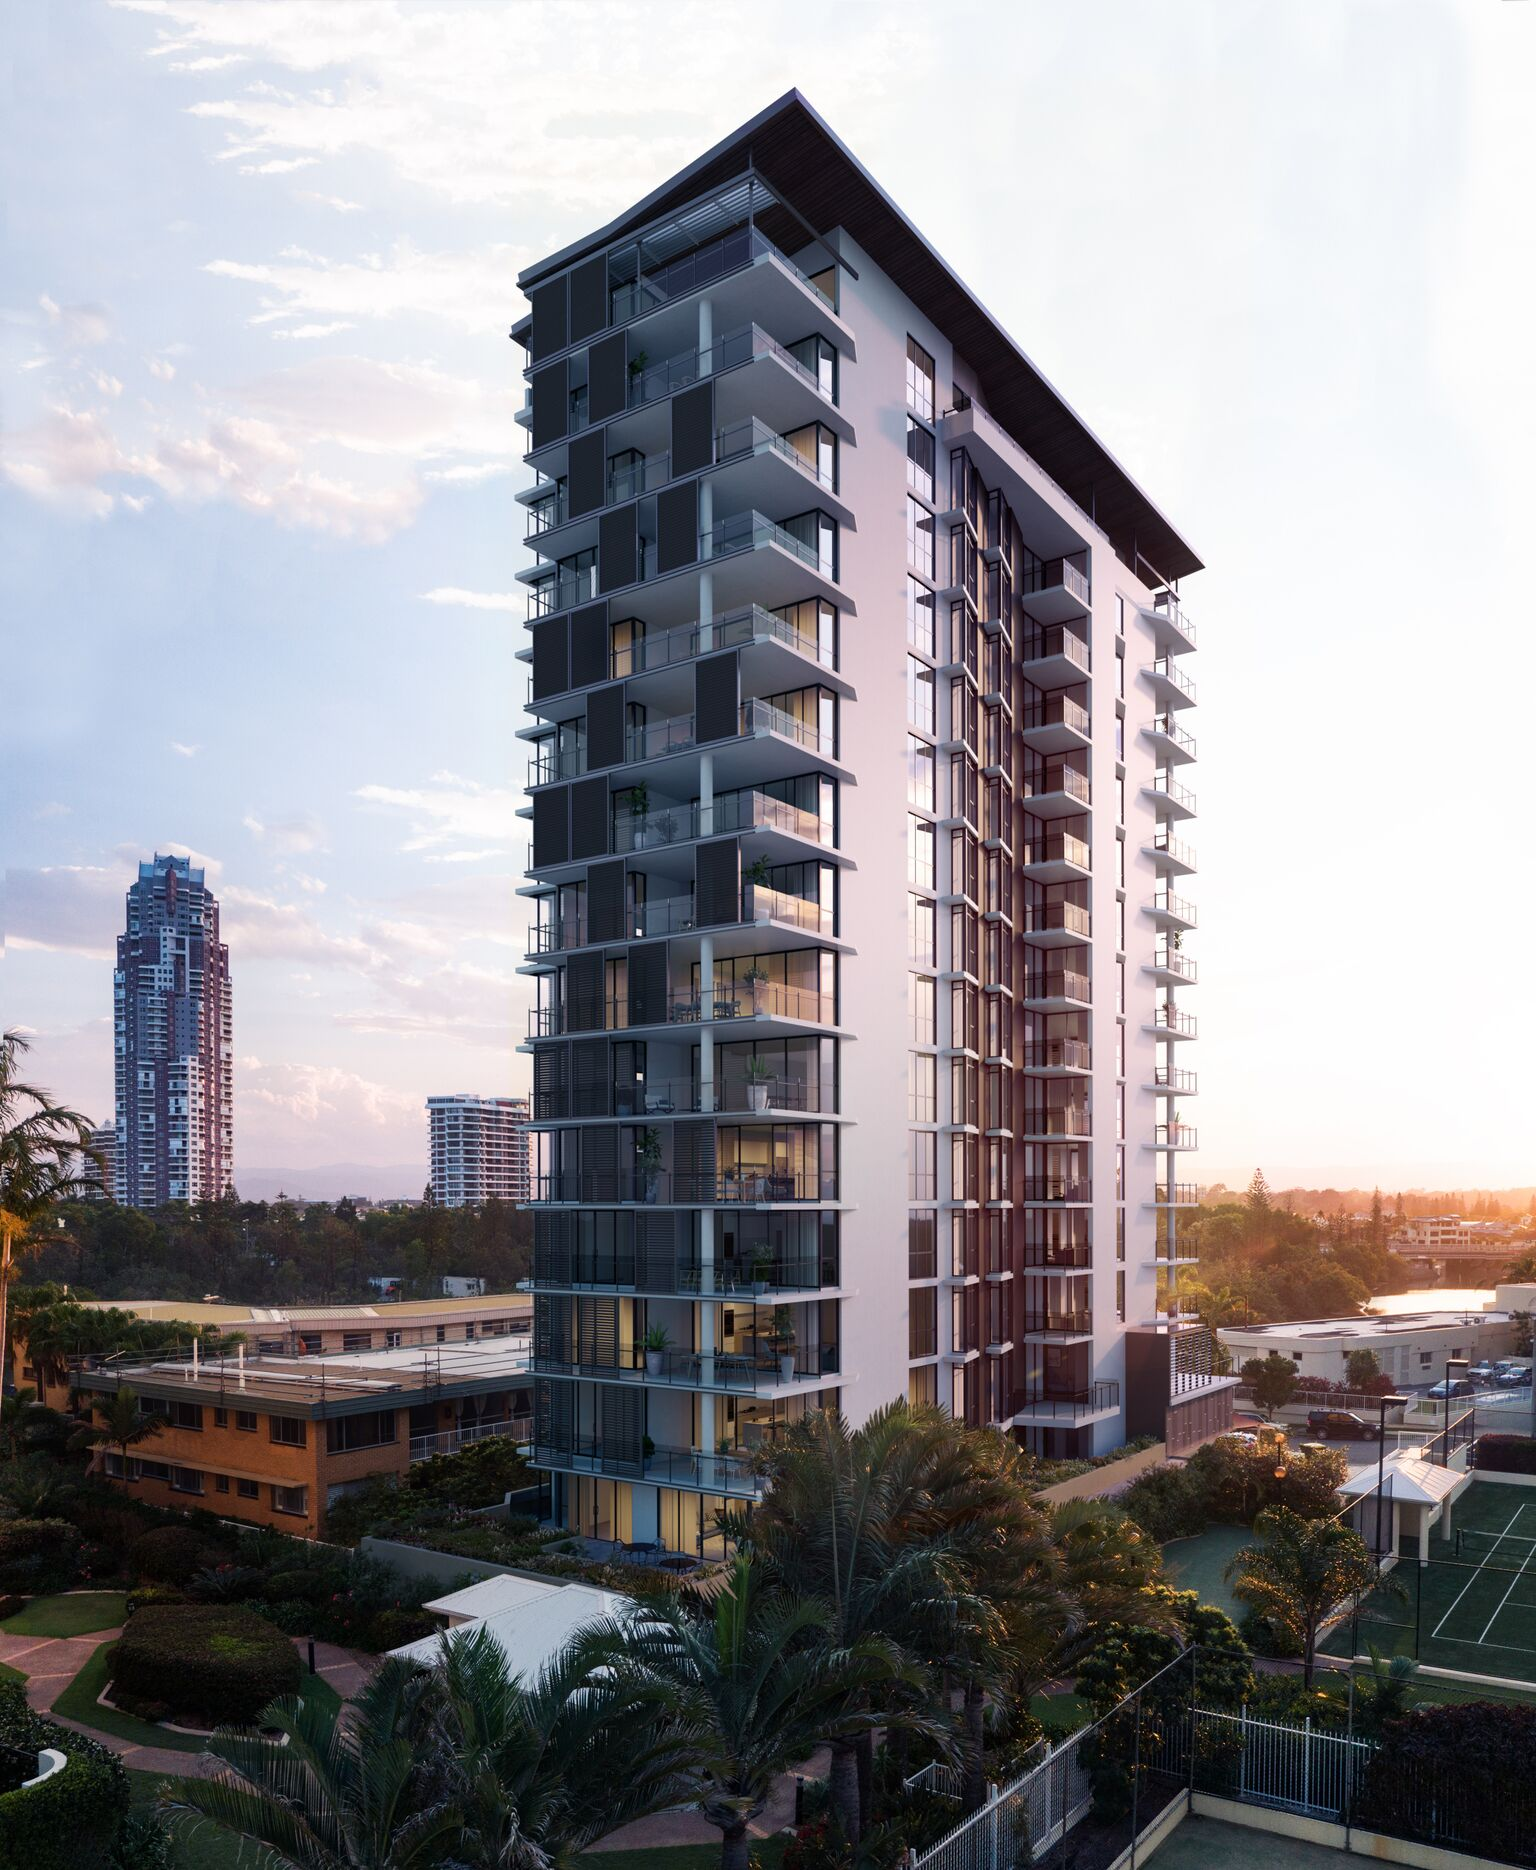 Owner occupancy on the rise as apartment design changes | The Real